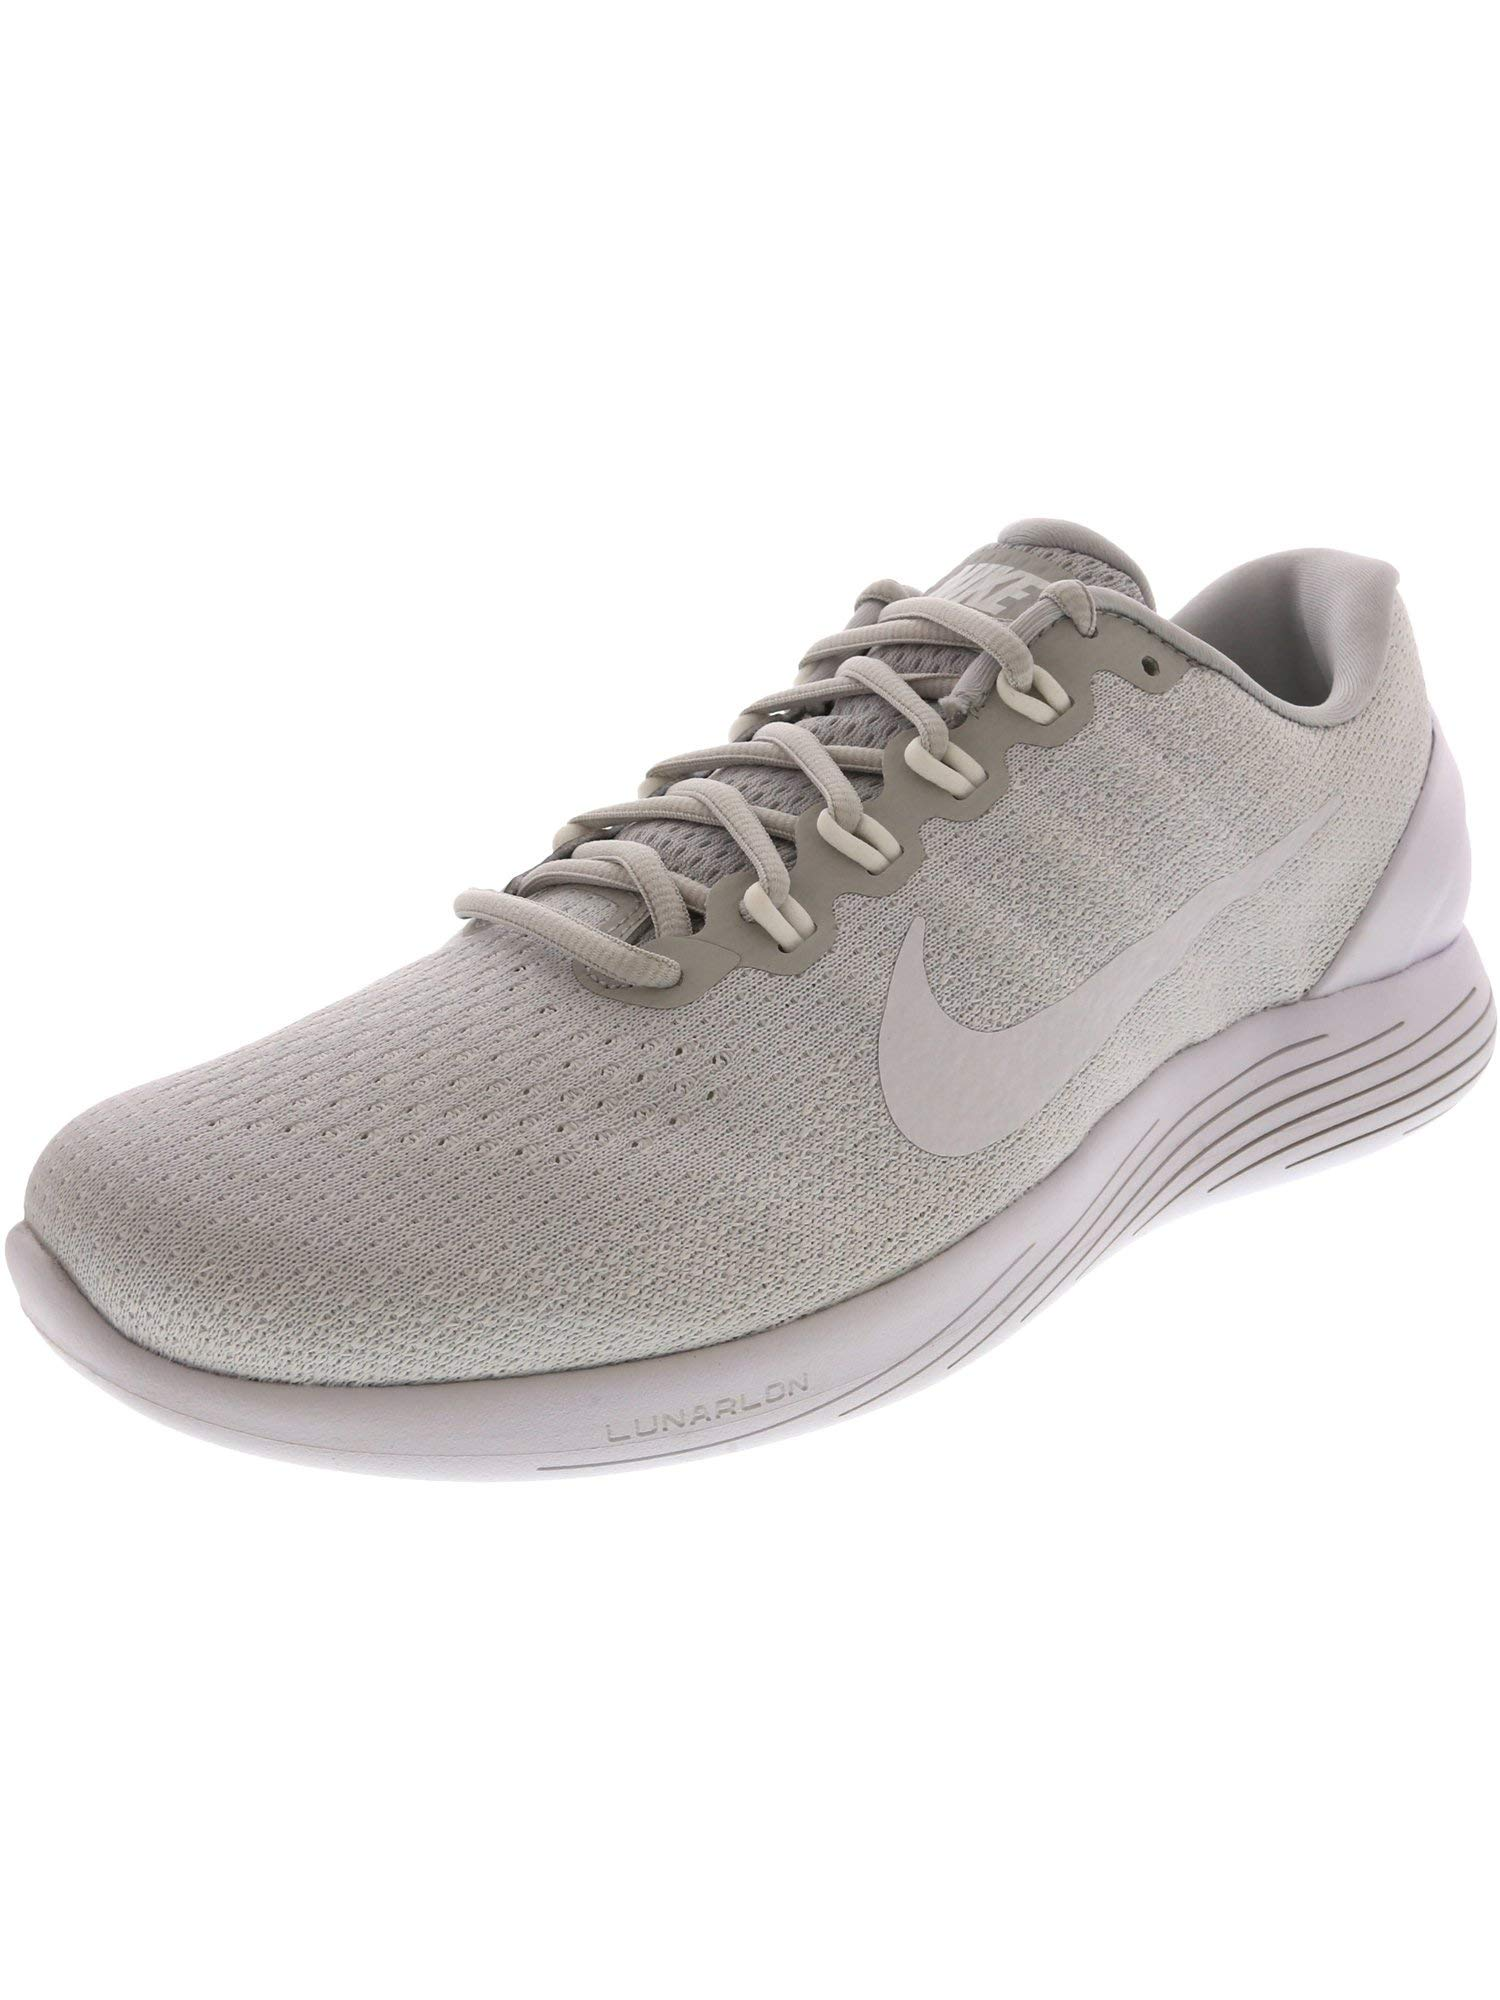 611d7eecc5c54 Galleon - Nike Men s Lunarglide 9 Pure Platinum White - Ankle-High Running  Shoe 10M